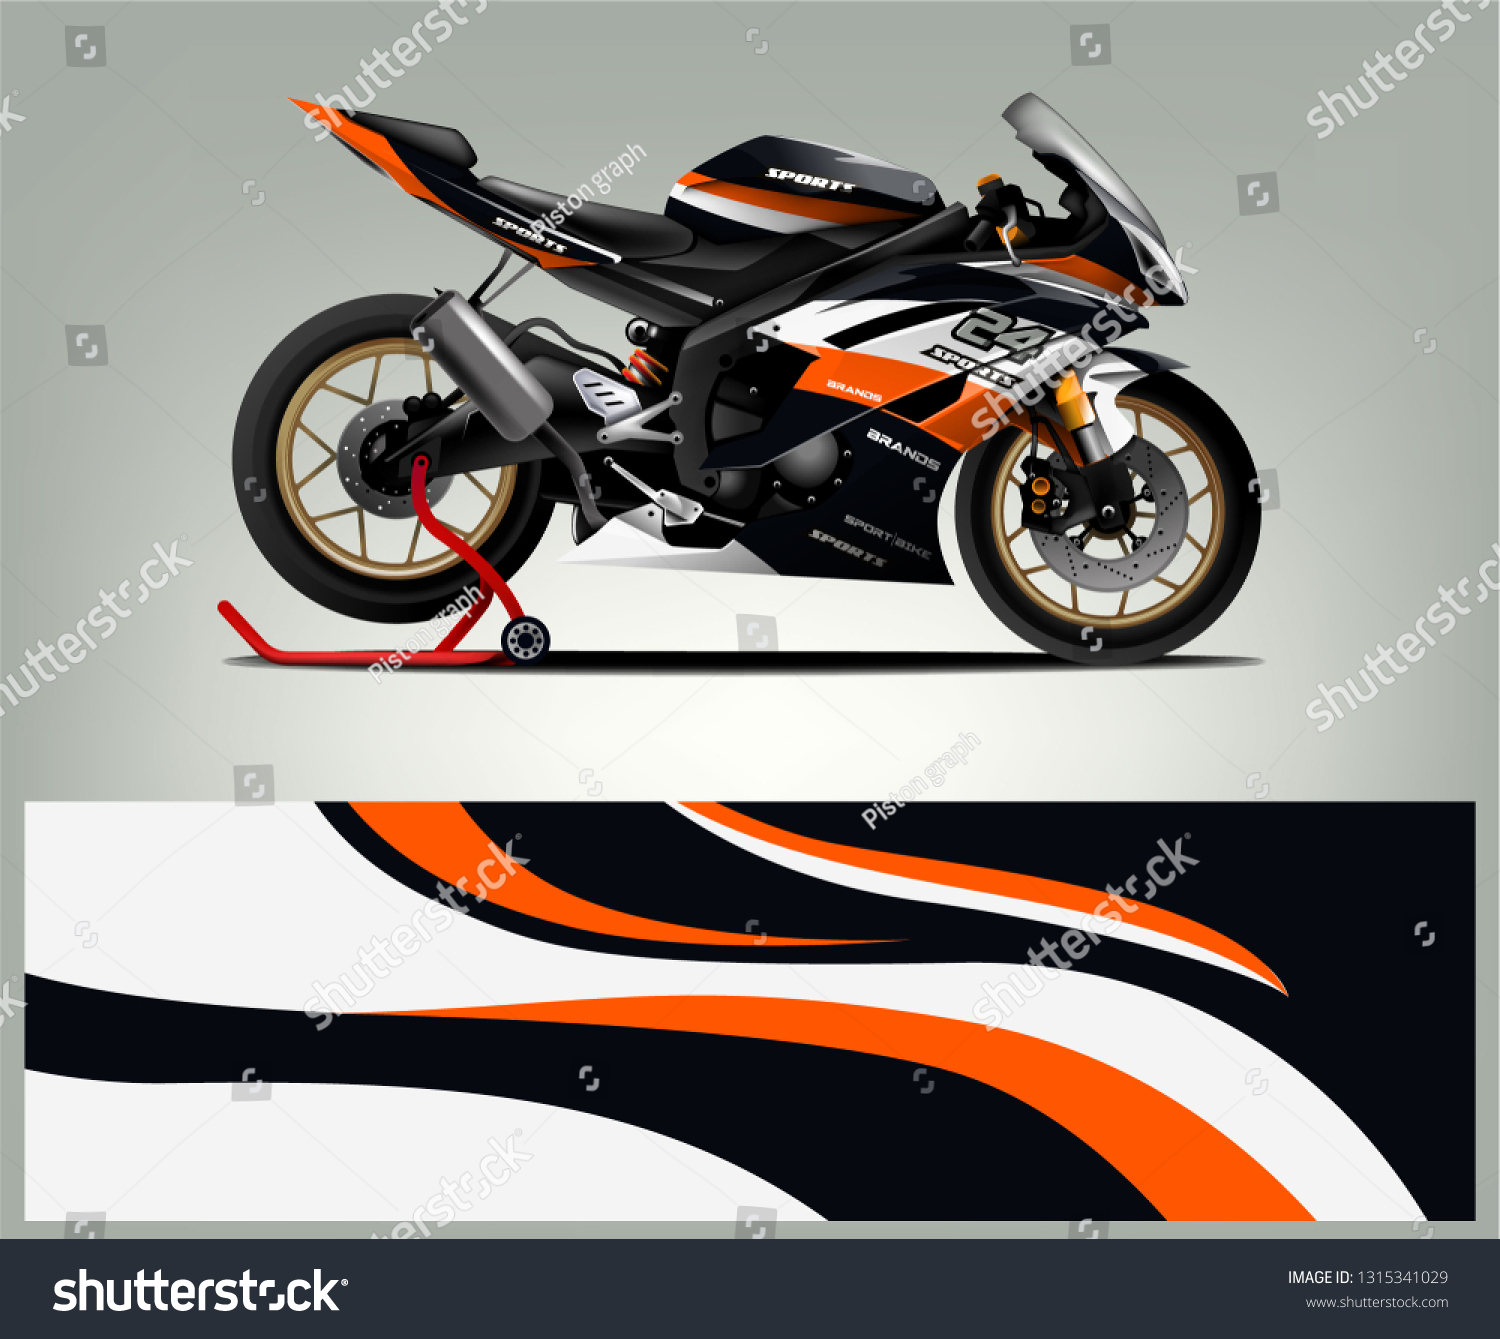 Sport bike sticker decal design abstract background vector concept for vehicle vinyl wrap and